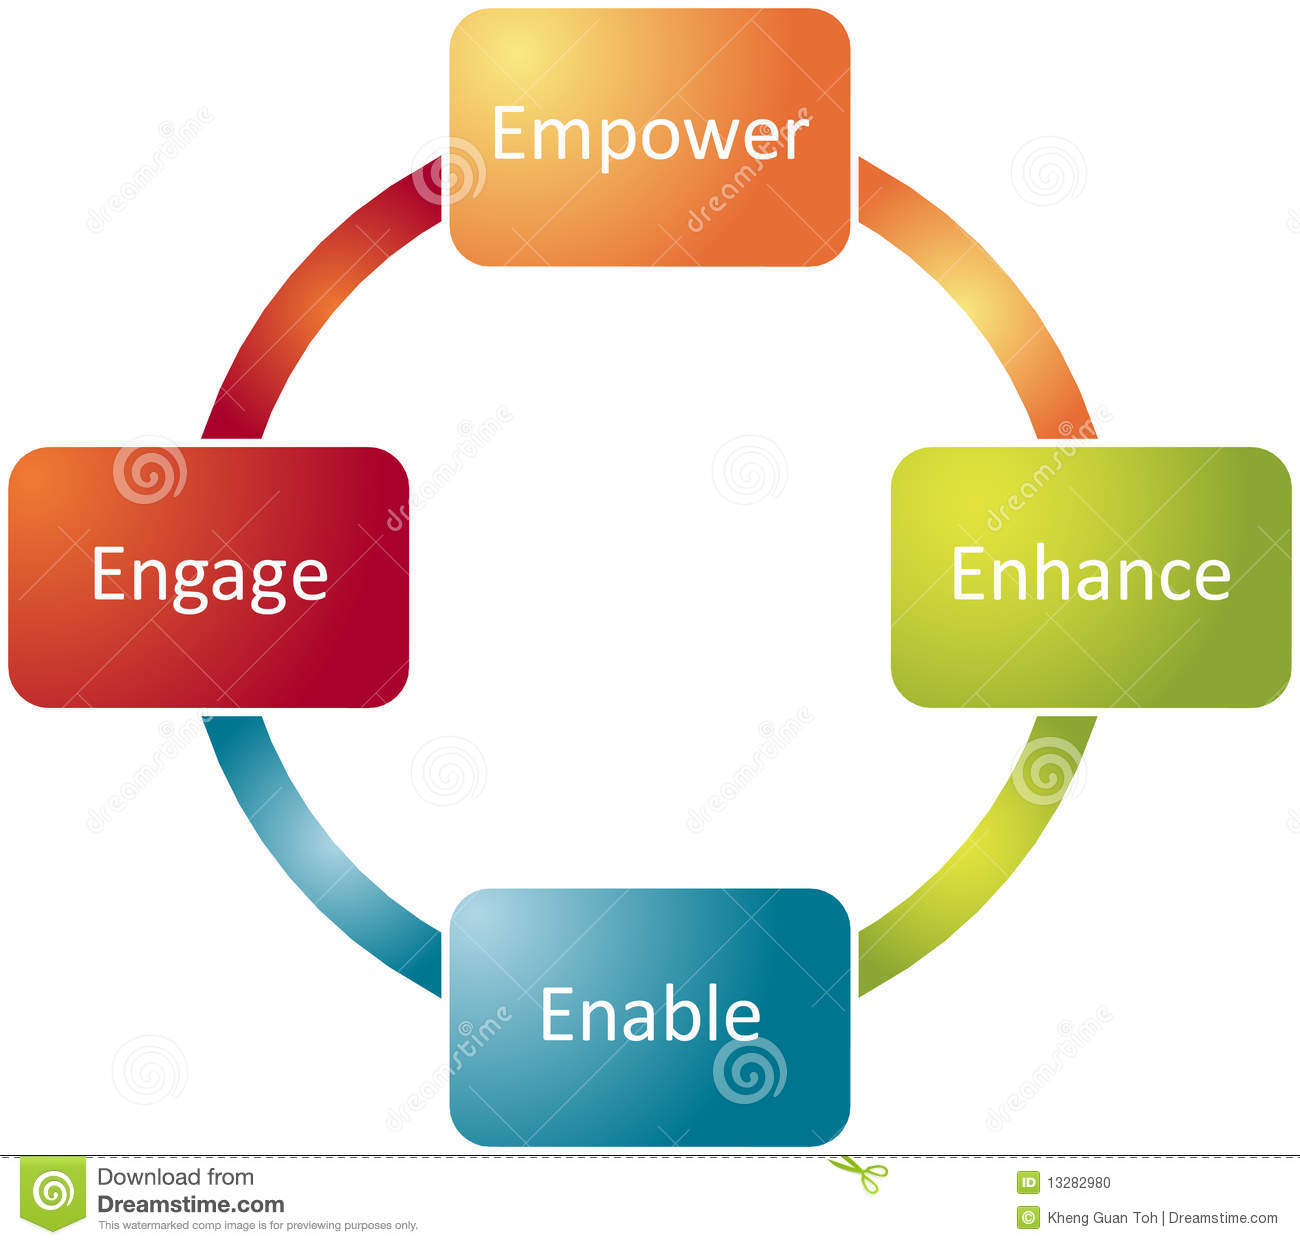 Employee Empowerment Business Diagram Stock Photo   Image  13282980